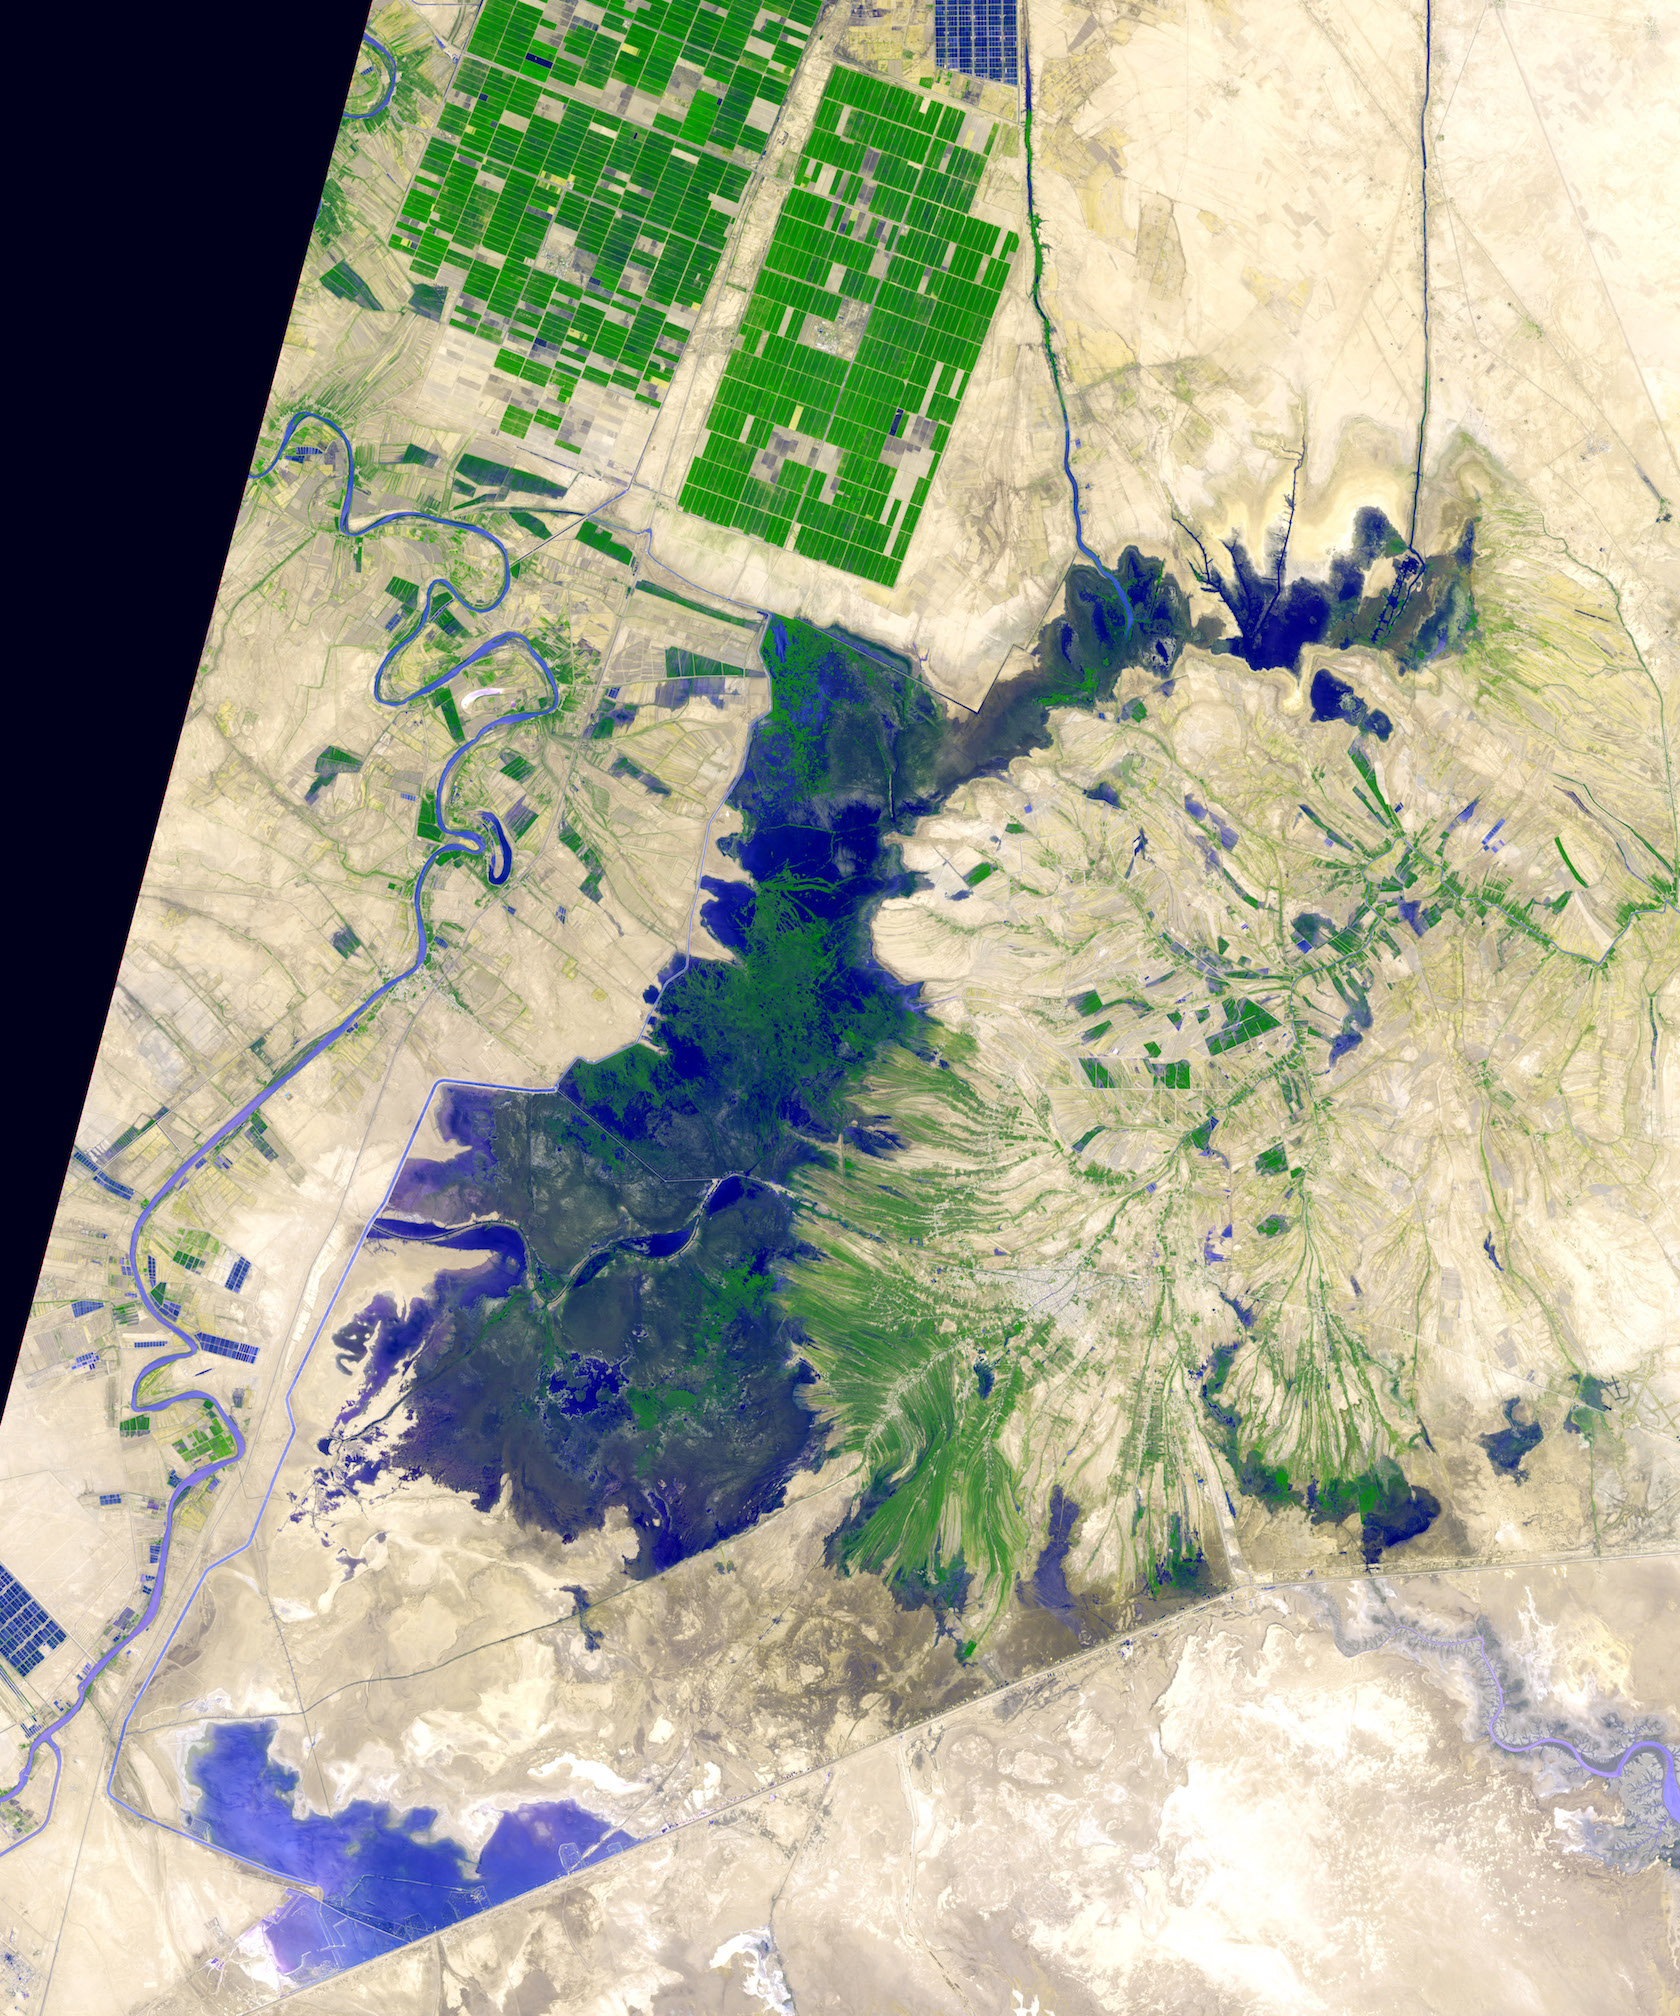 Today's Image of the Day comes from the NASA Earth Observatory and features a satellite image of the Shadegan Pond in Iran.